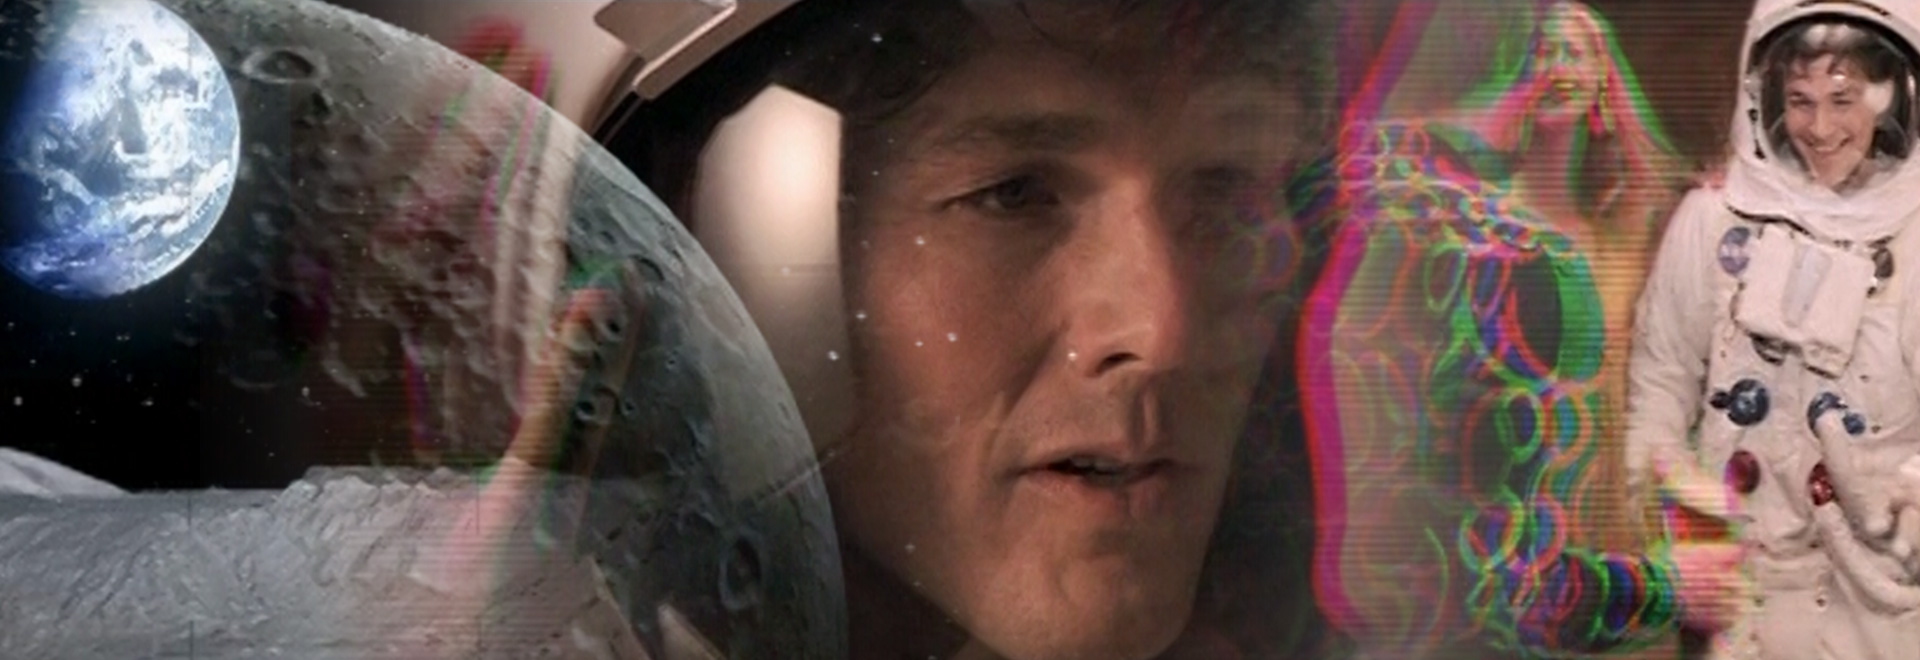 js-filmproduction-postproduction-musicvideo-a-ha-MinorEarthMajorSky-collage